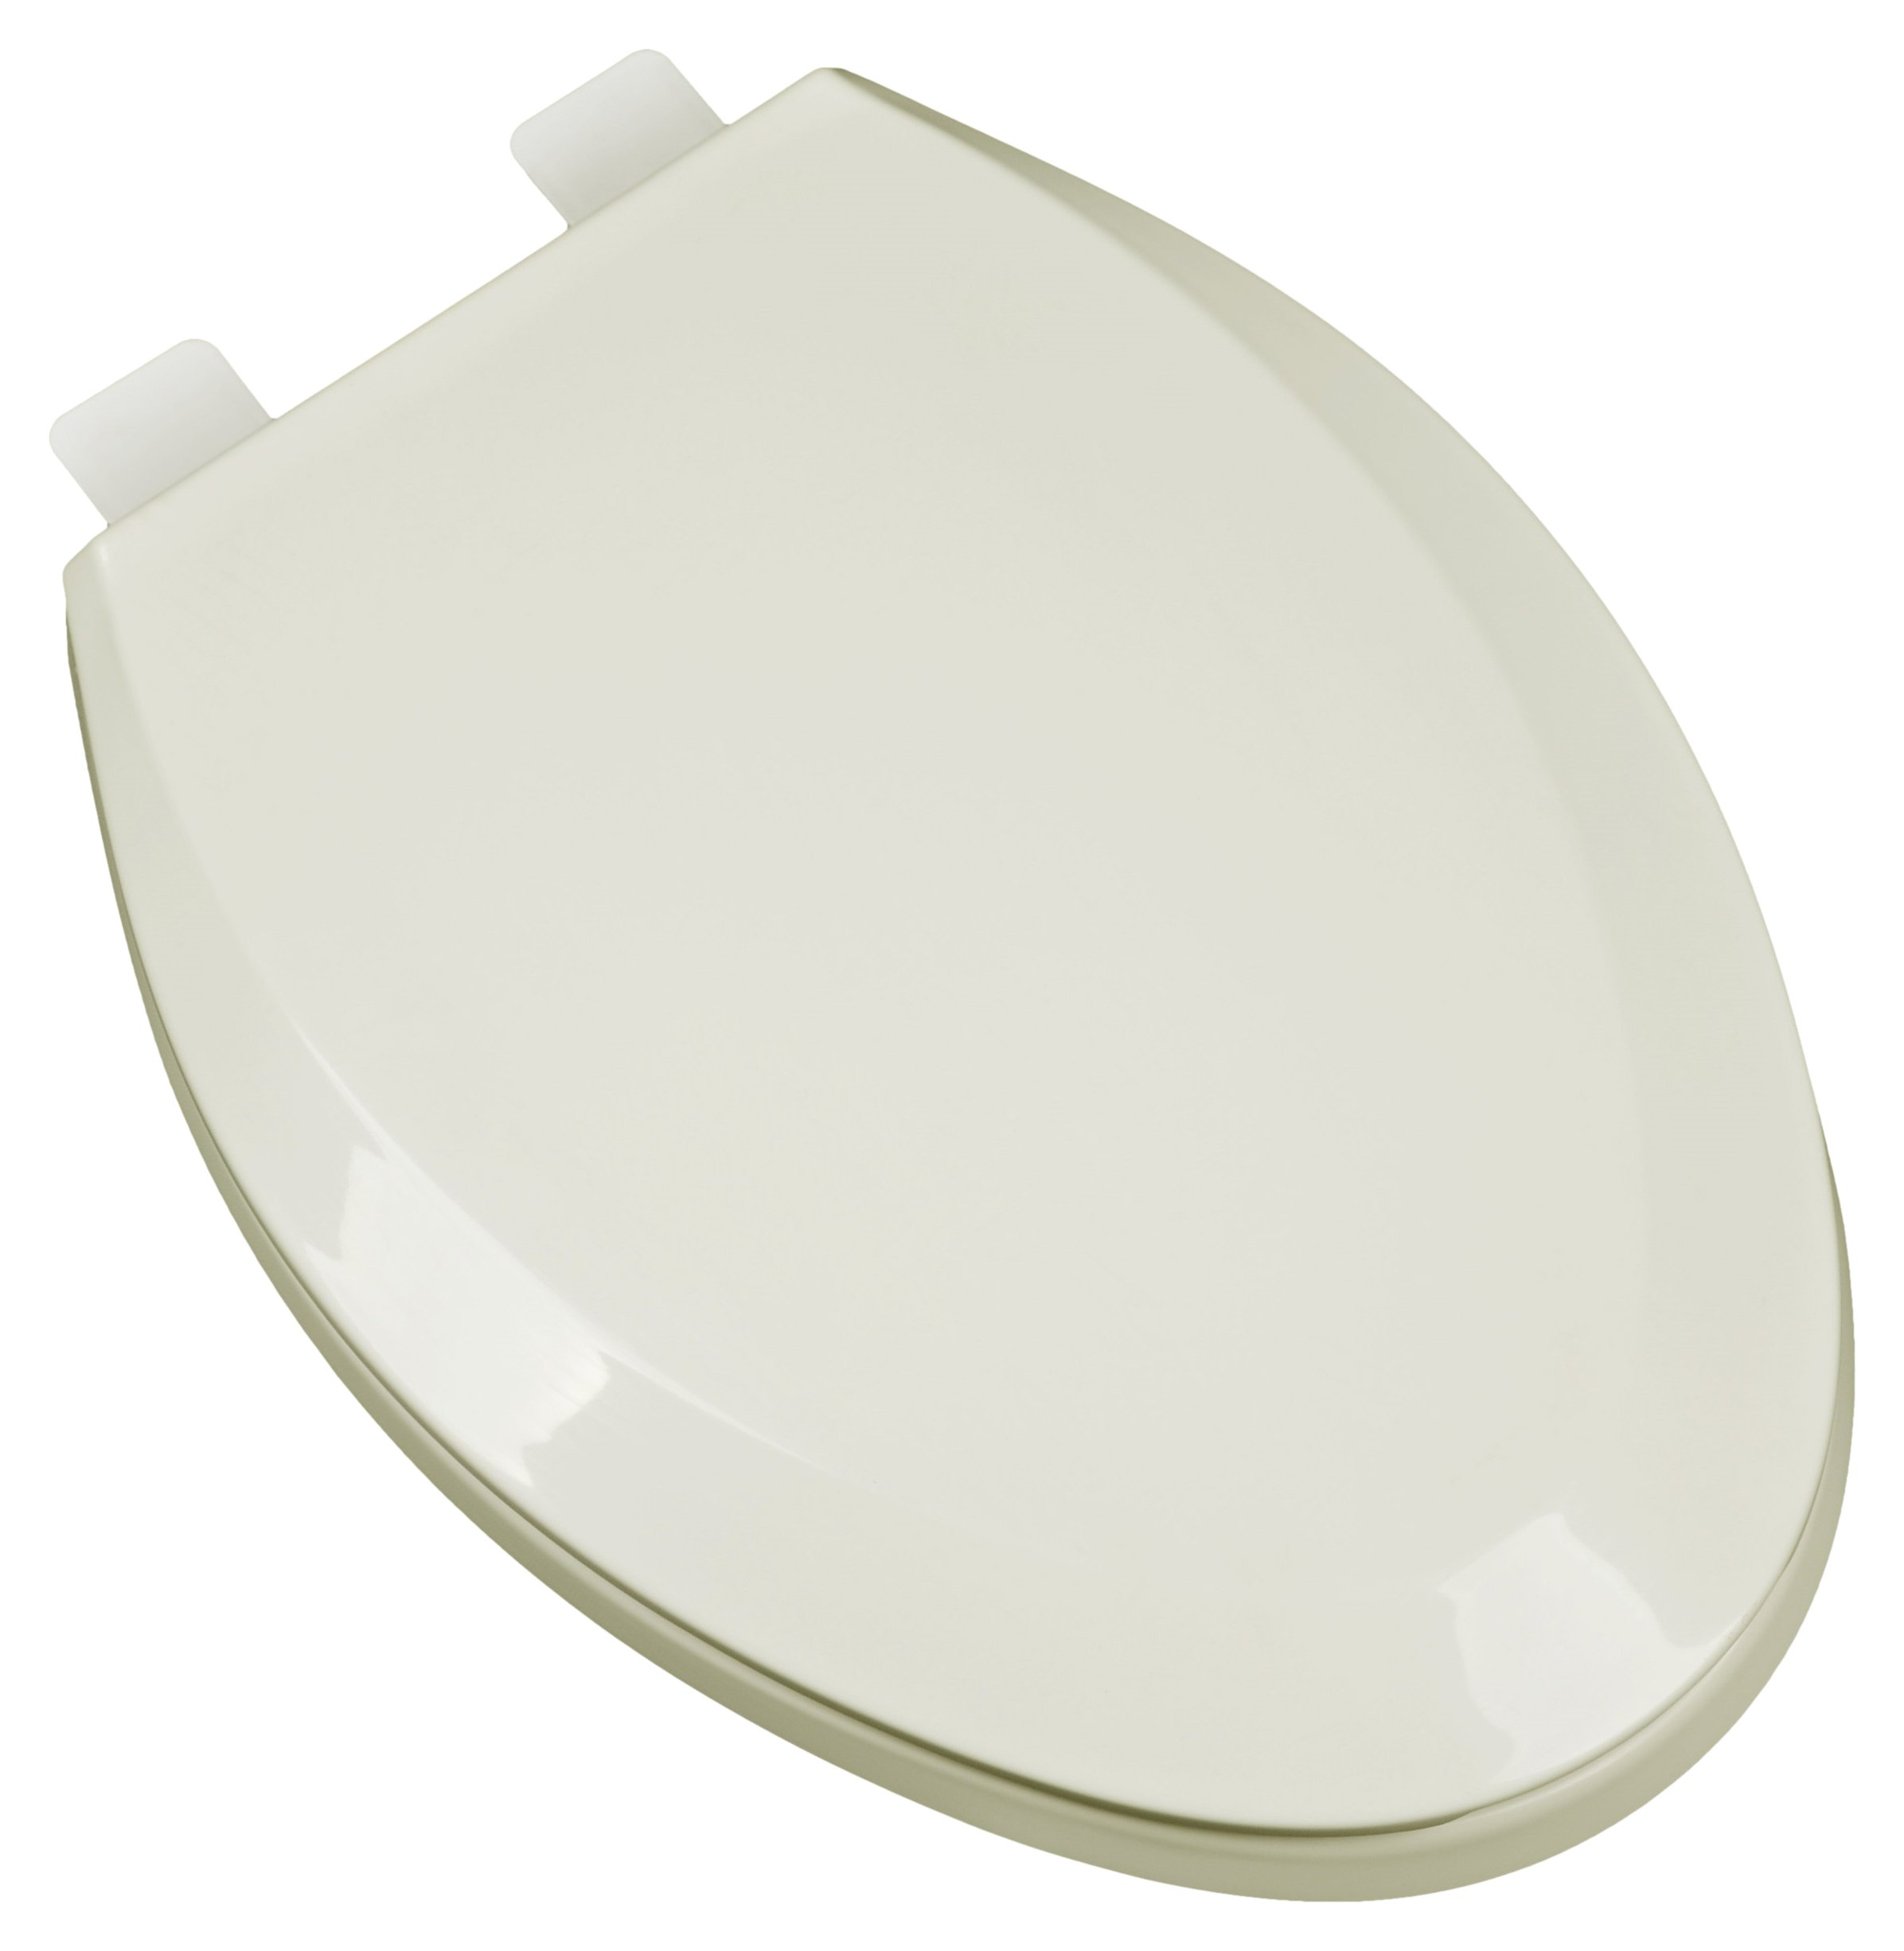 Bath Décor 2F1E5-02 Premium Plastic Elongated Toilet Seat with Adjustable Hinge